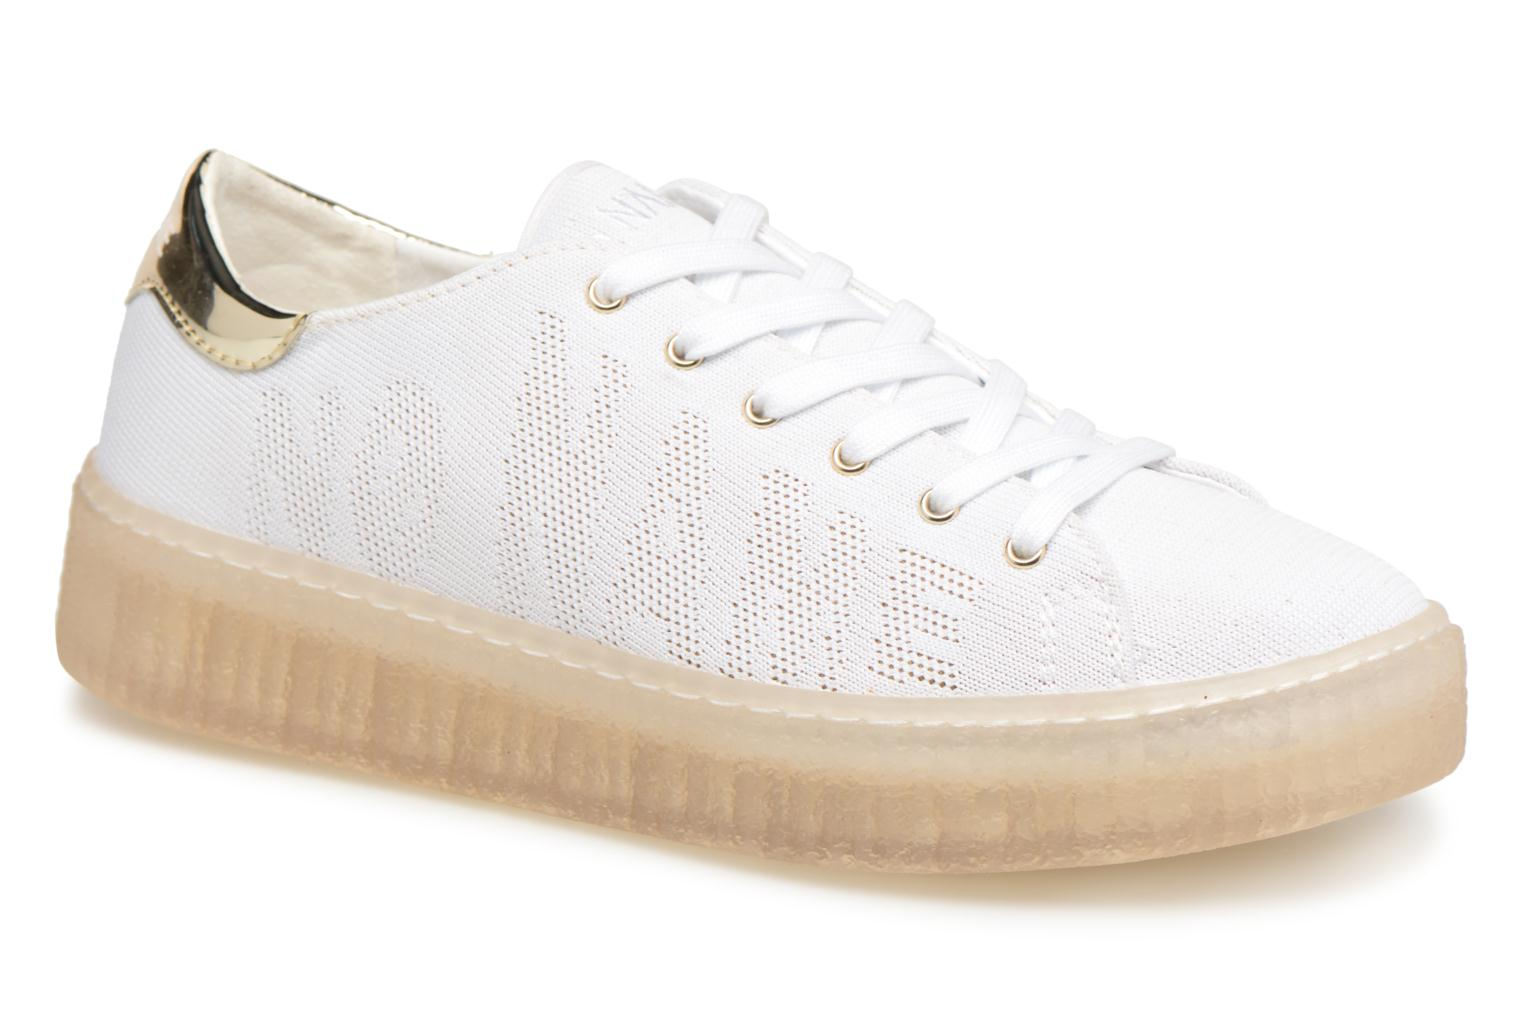 No Name Picadilly chez soft (White) - Trainers chez Picadilly (340884) 08b881